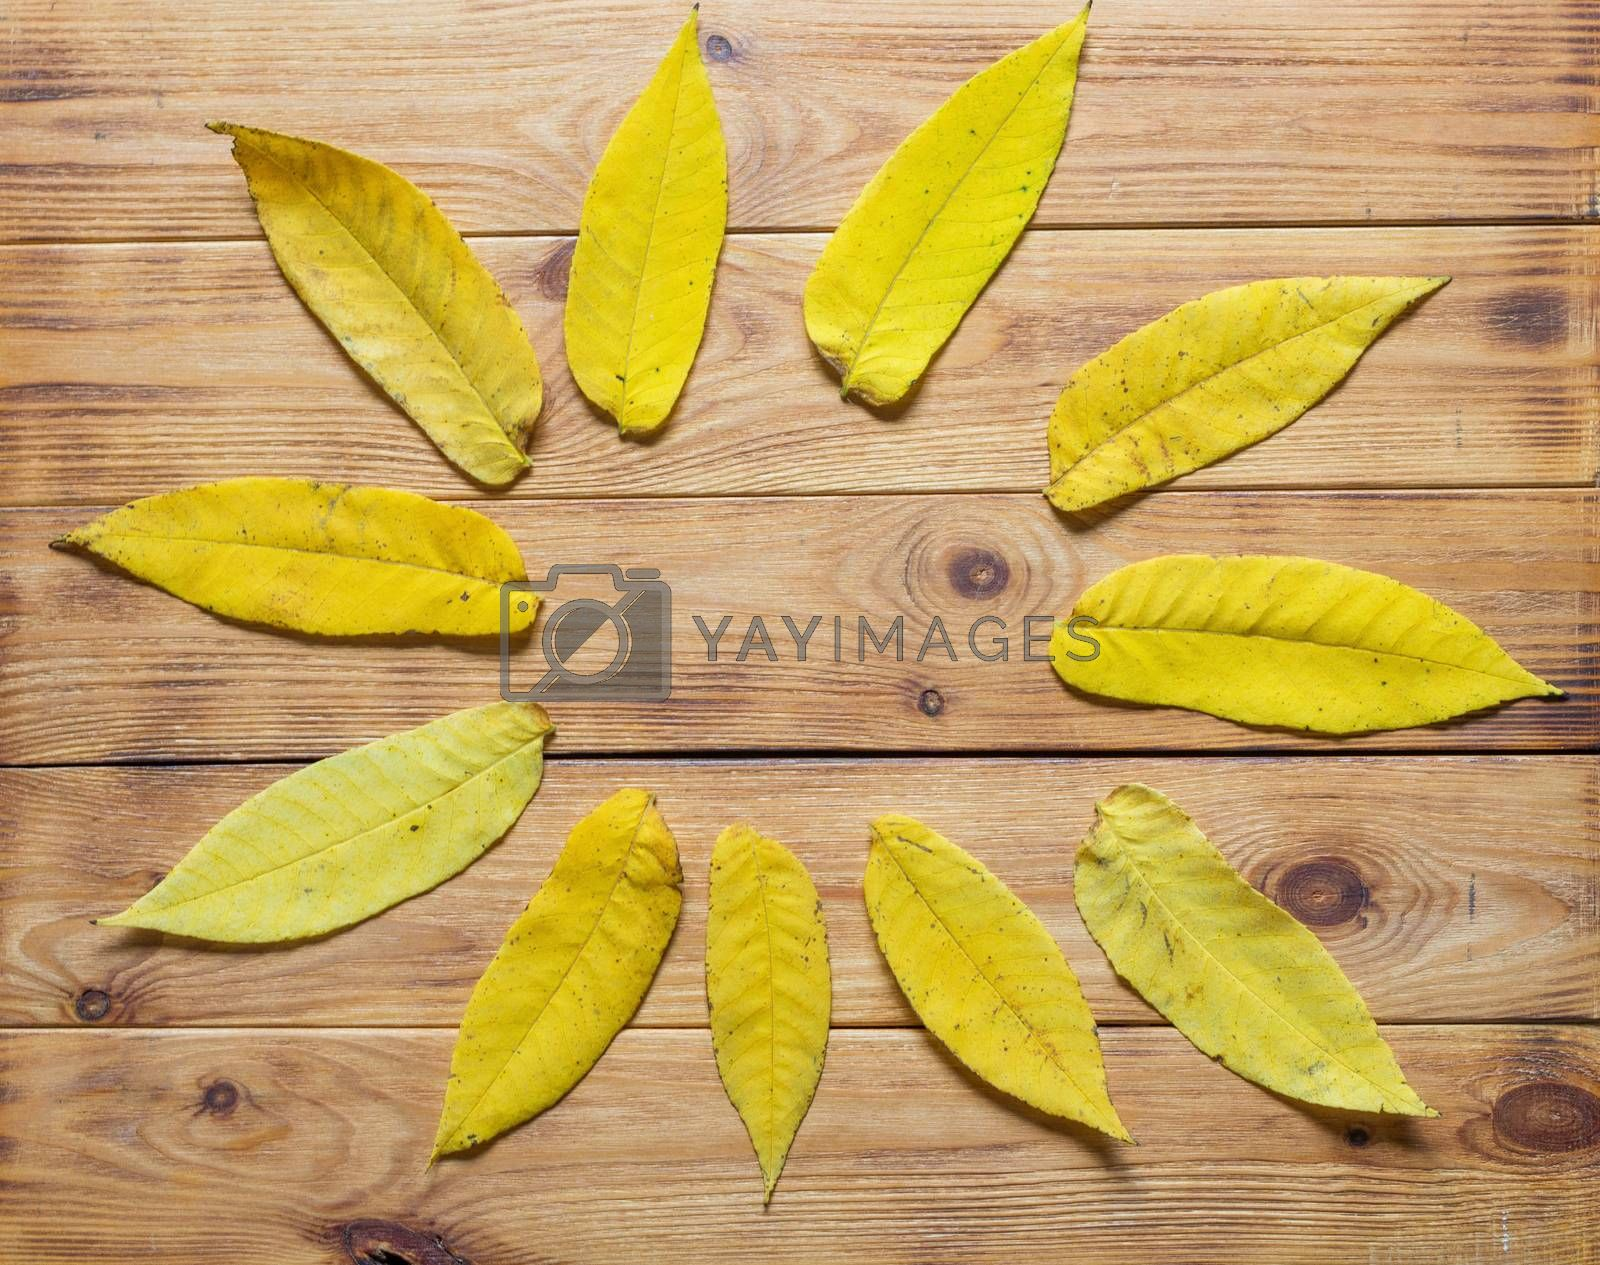 Top view of frame of multicolored fallen leaves on wooden background.